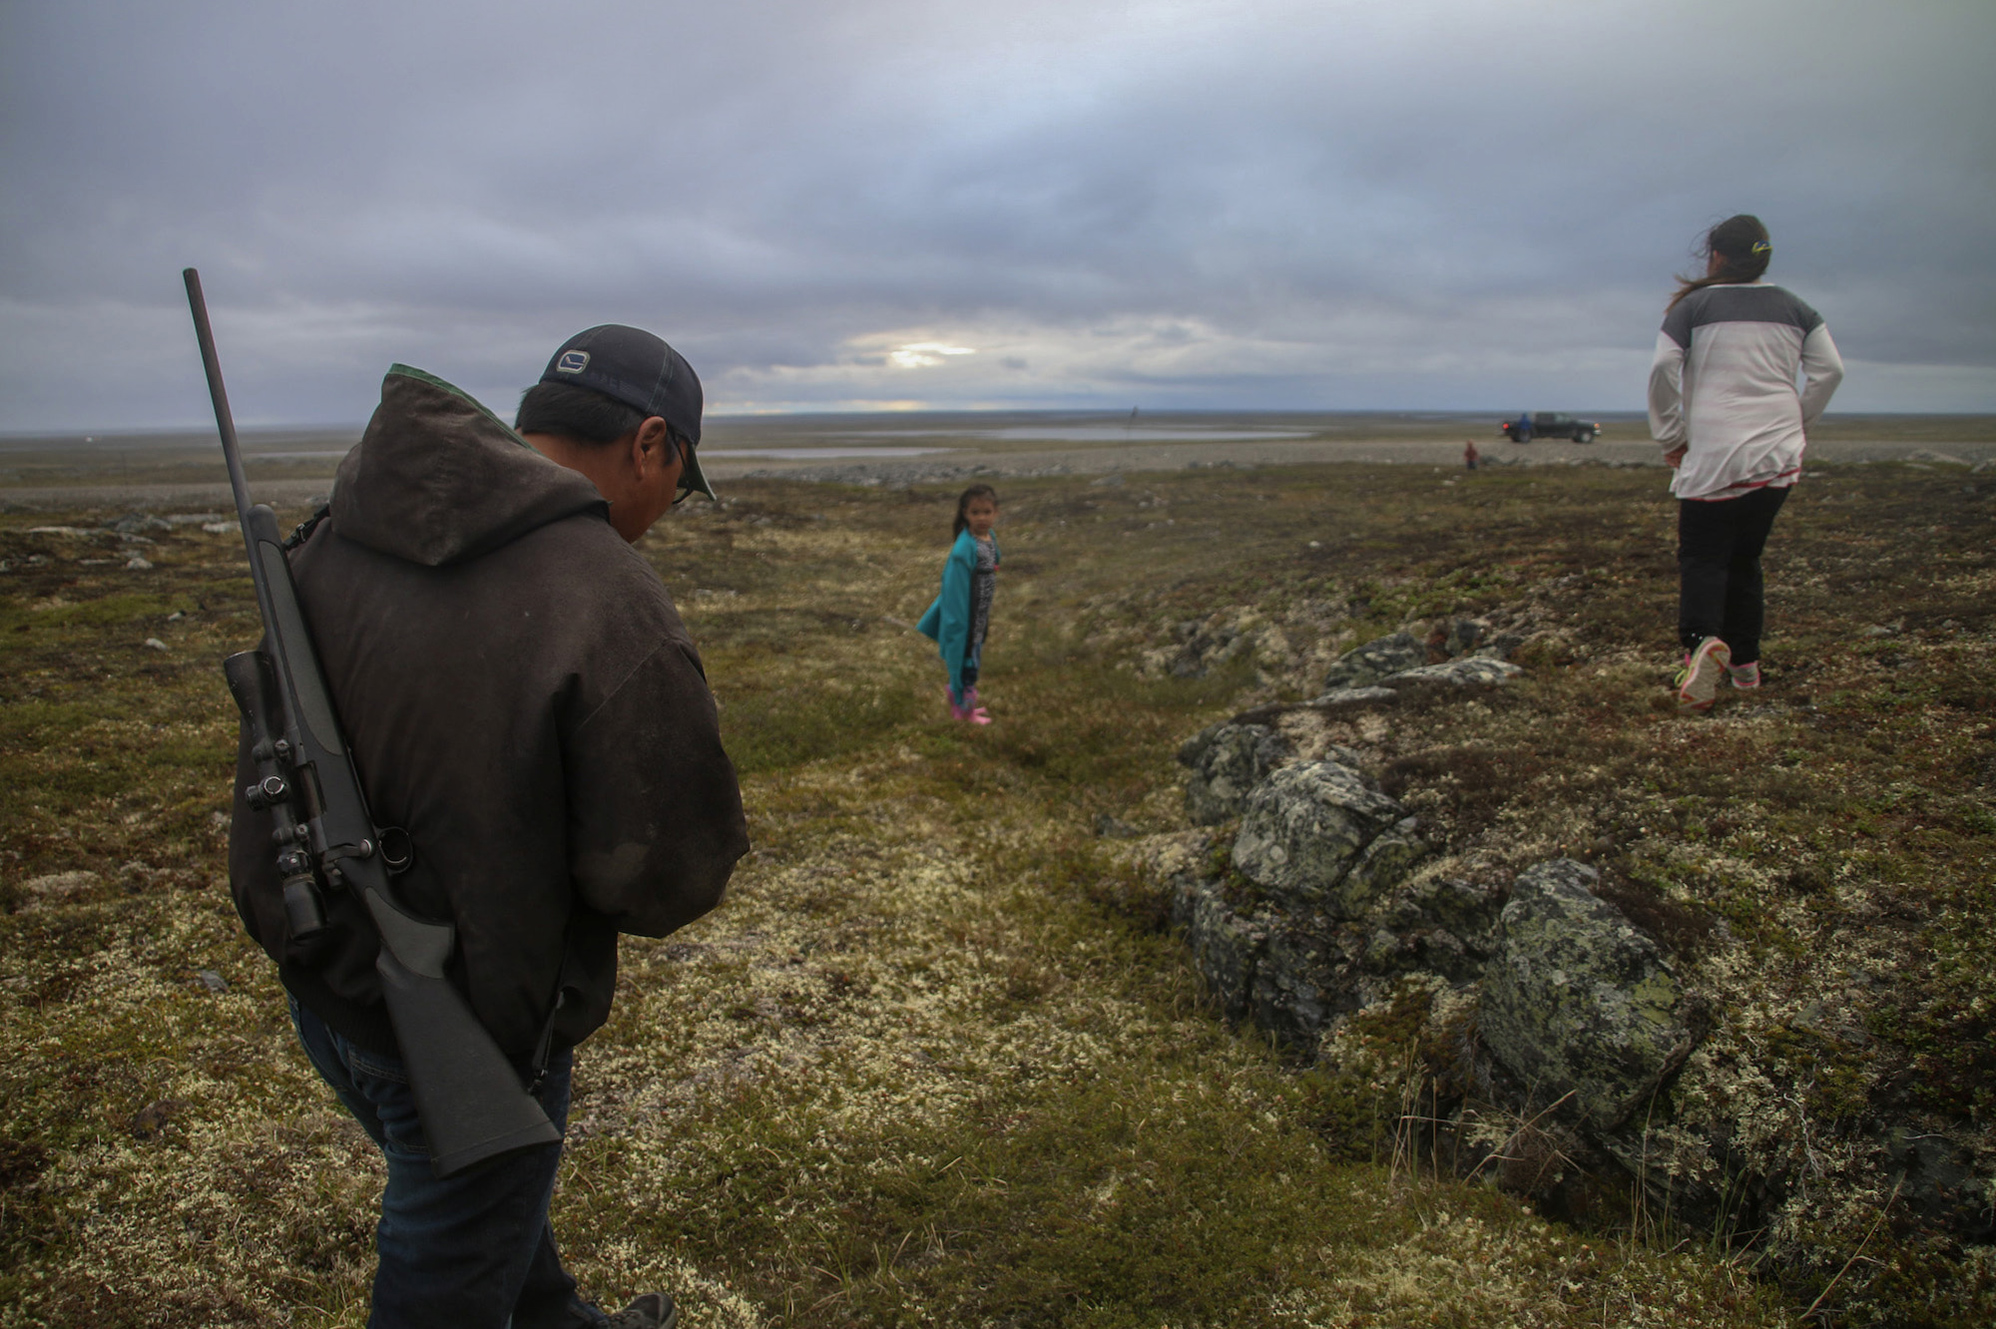 A man with a gun strapped to his back, a woman, and a young girl walking across a field toward a vehicle in the distance